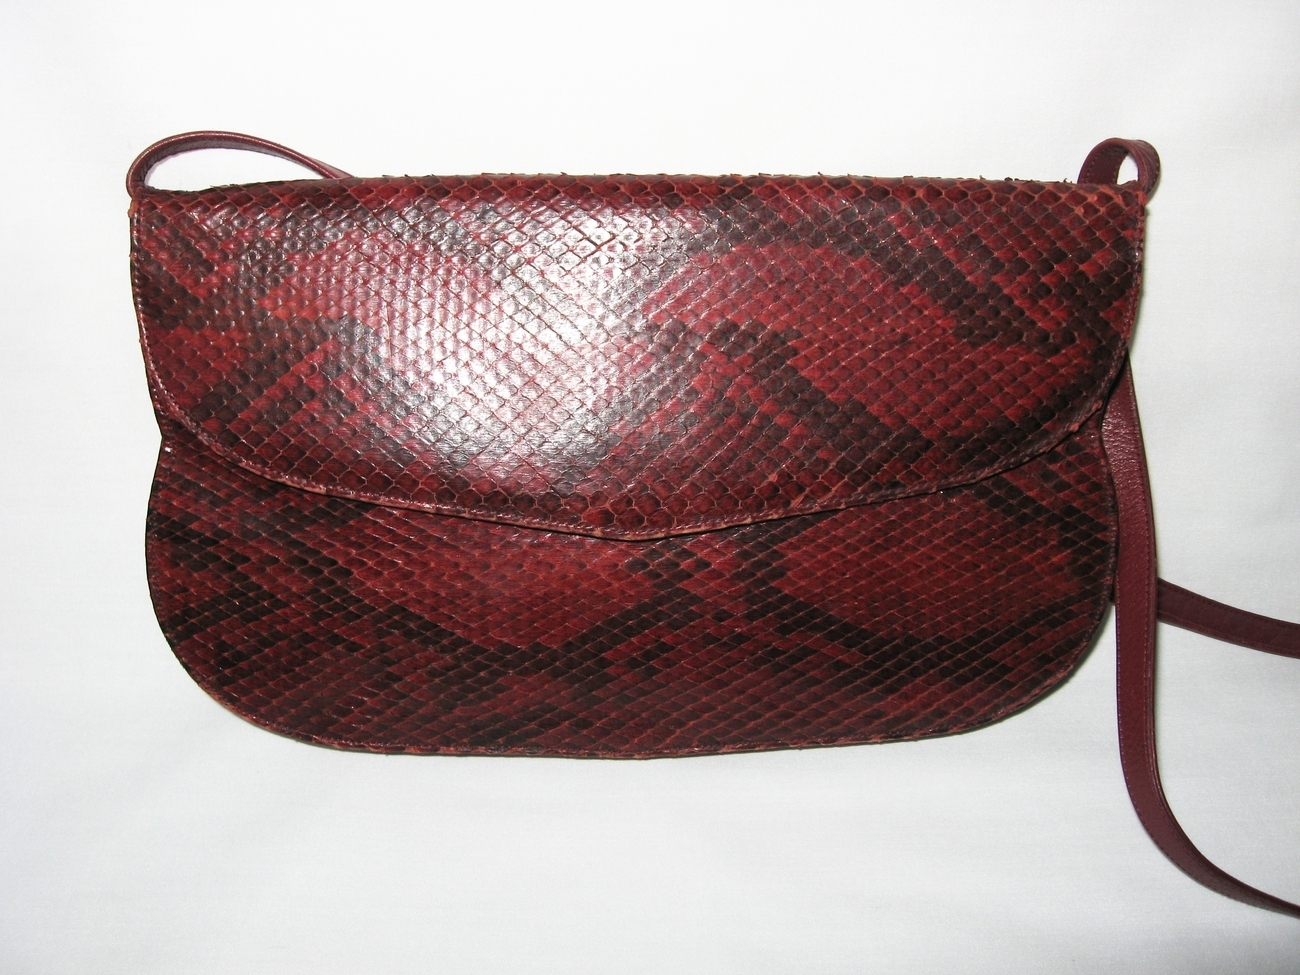 Charles_jourdan_vintage_handbag_purse_bag_snakeskin